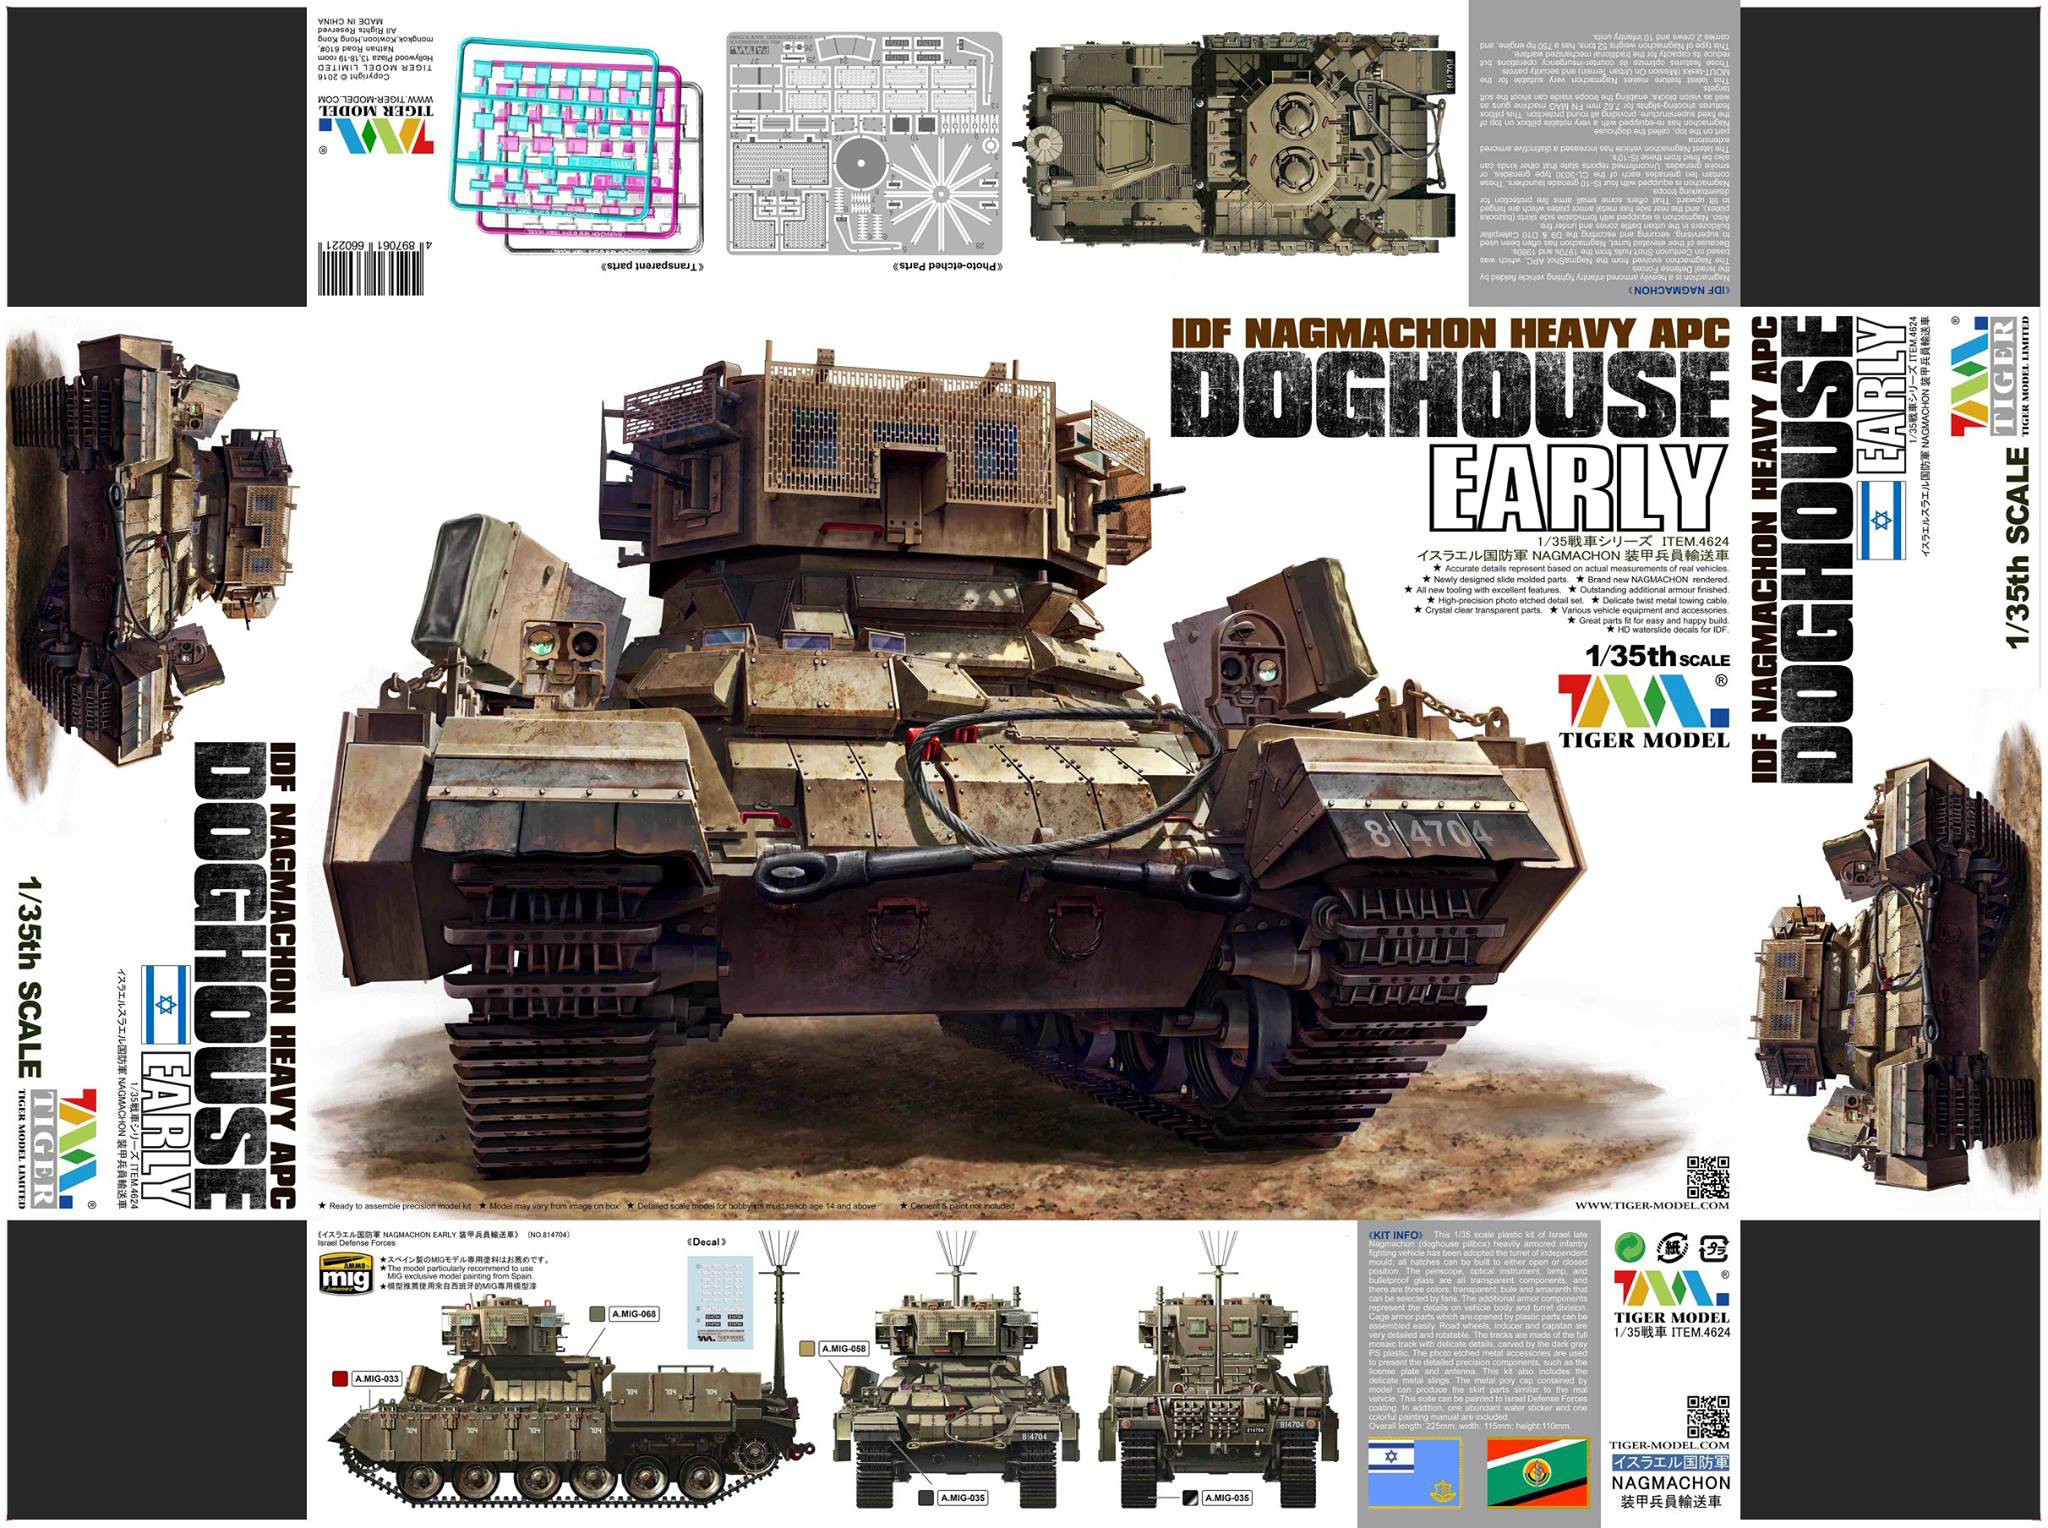 Tiger Model NagmachonDoghouse-Early - Tiger Model - Scale 1/35 - TIGE4624